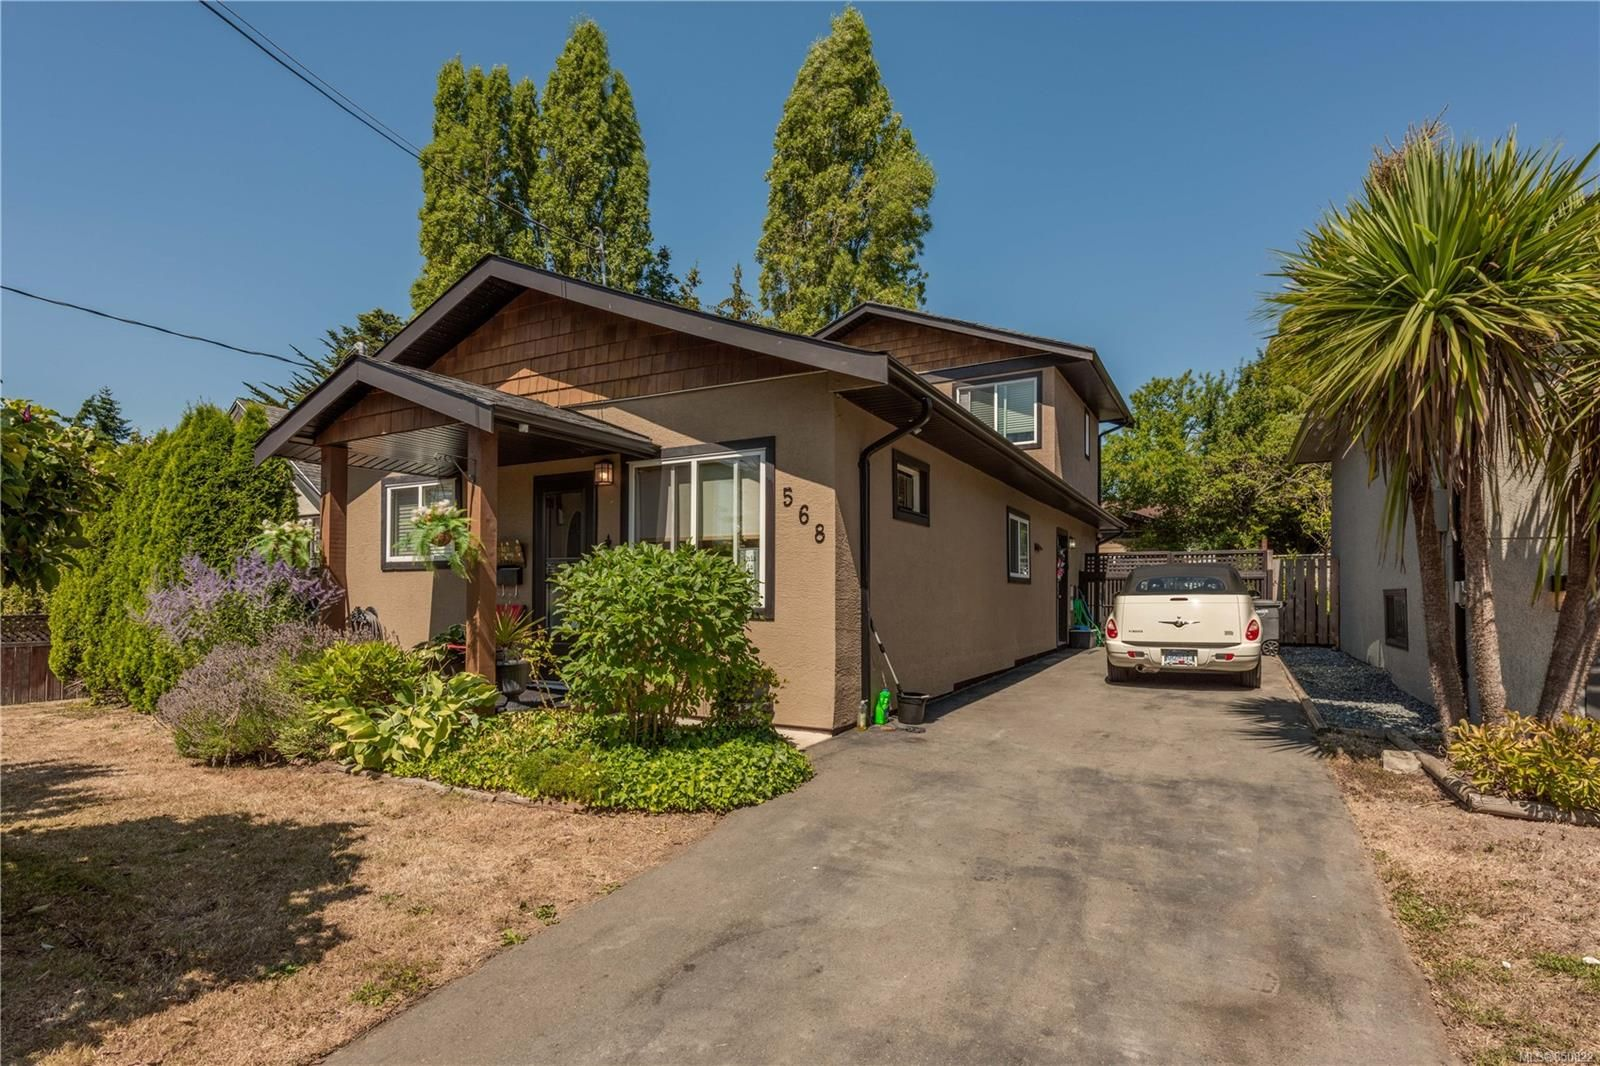 Substantially updated inside and out, with RV parking and beautiful garden.